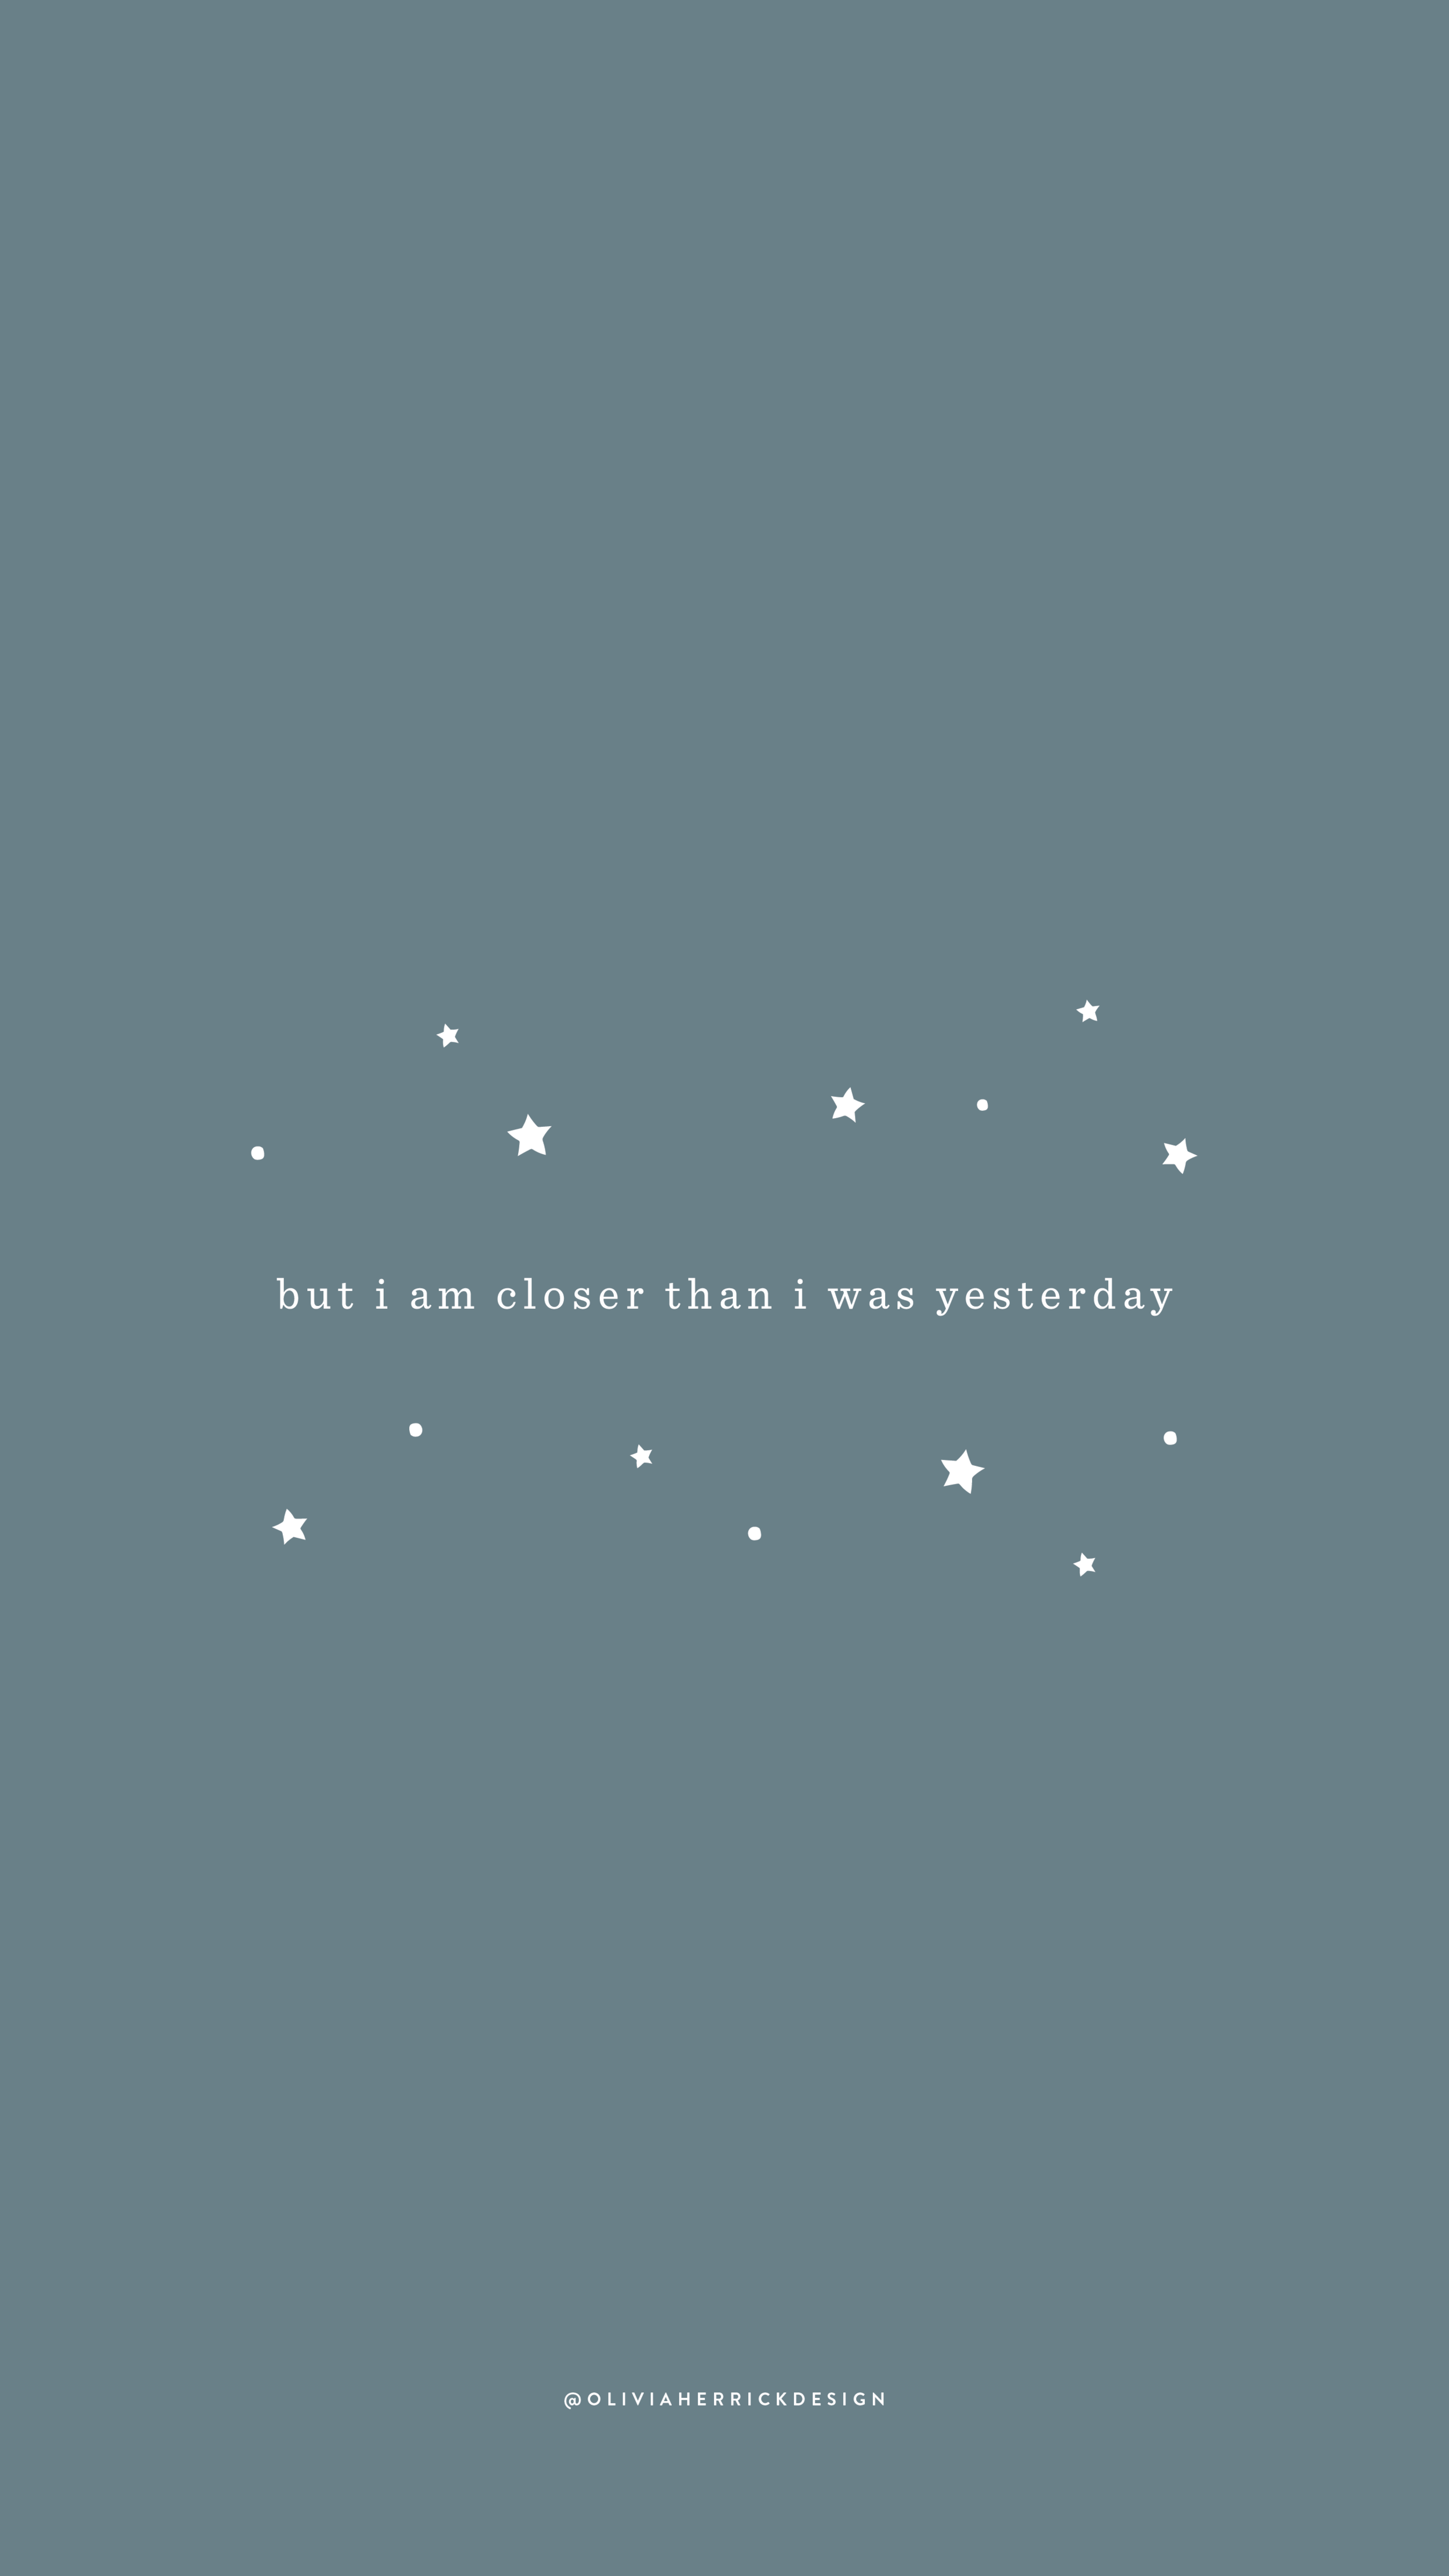 olivia-herrick-design-closer-than-yesterday-1.png